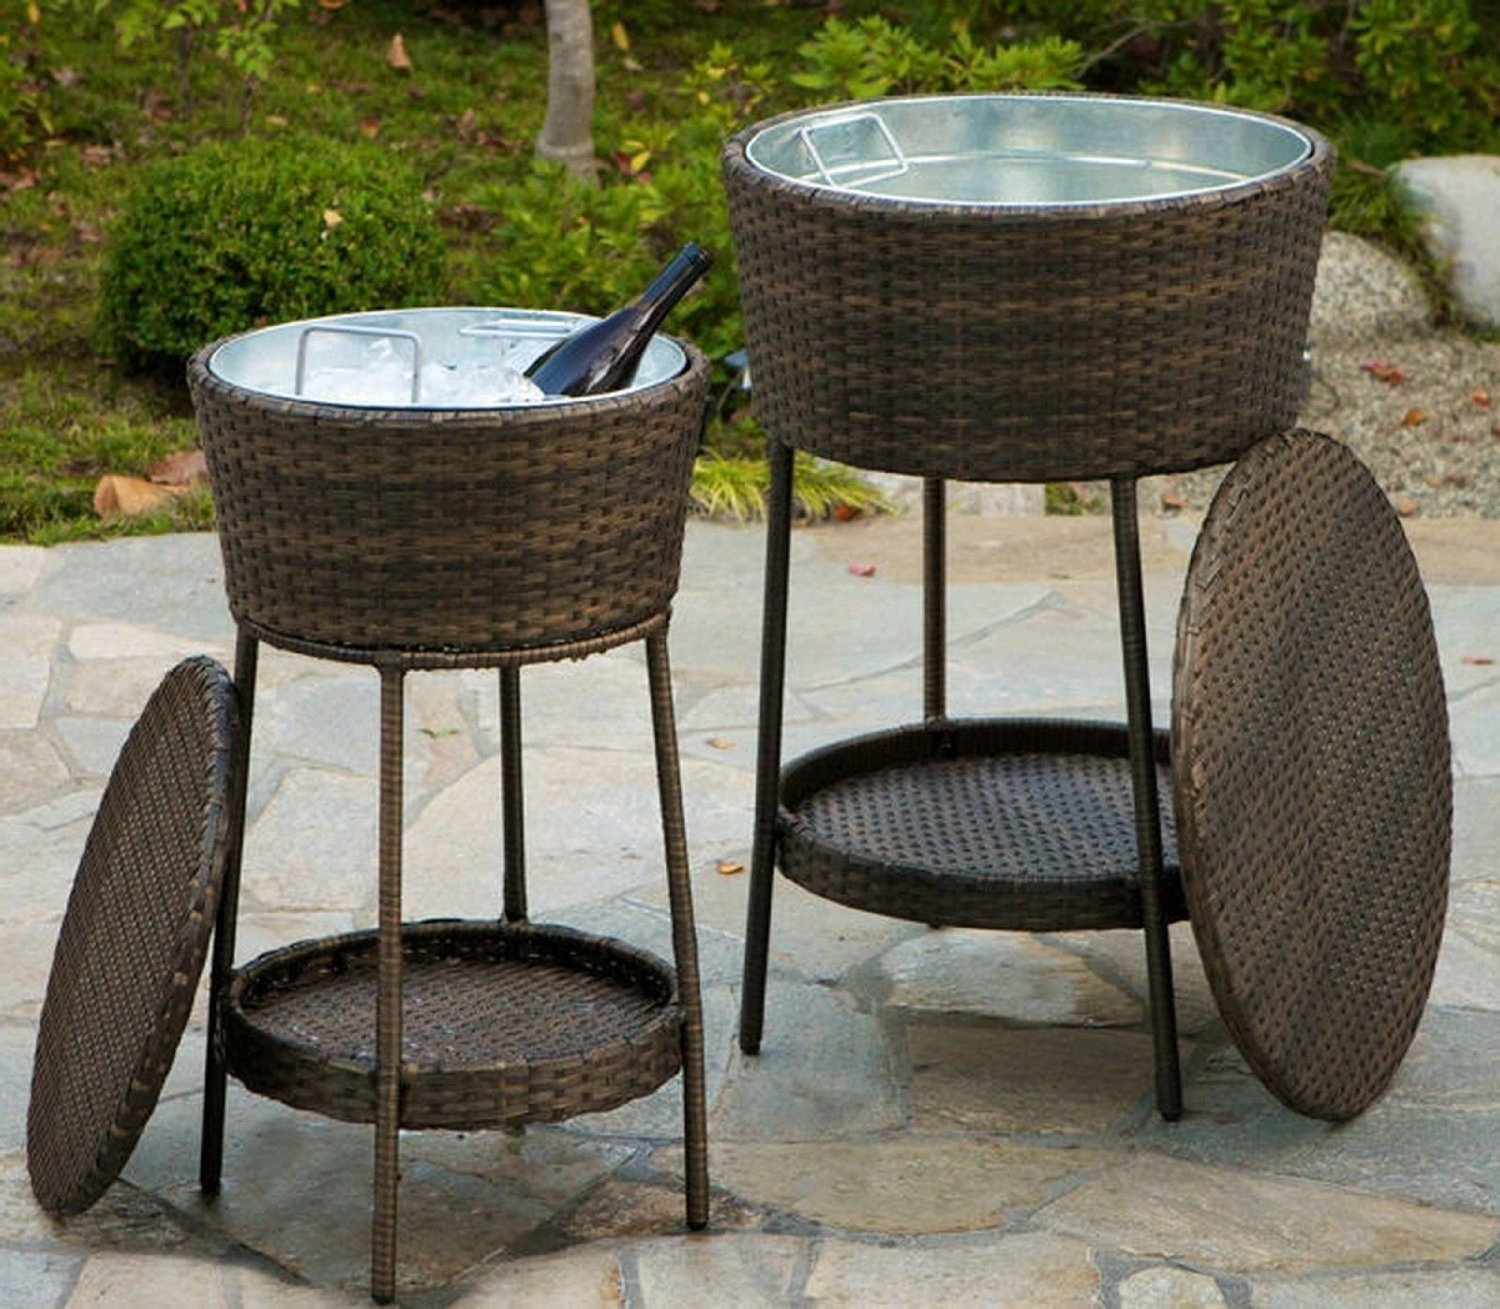 NEW Set of 2 Drink Serving Ice Buckets Cooler w All-Weather Resin Wicker Stands